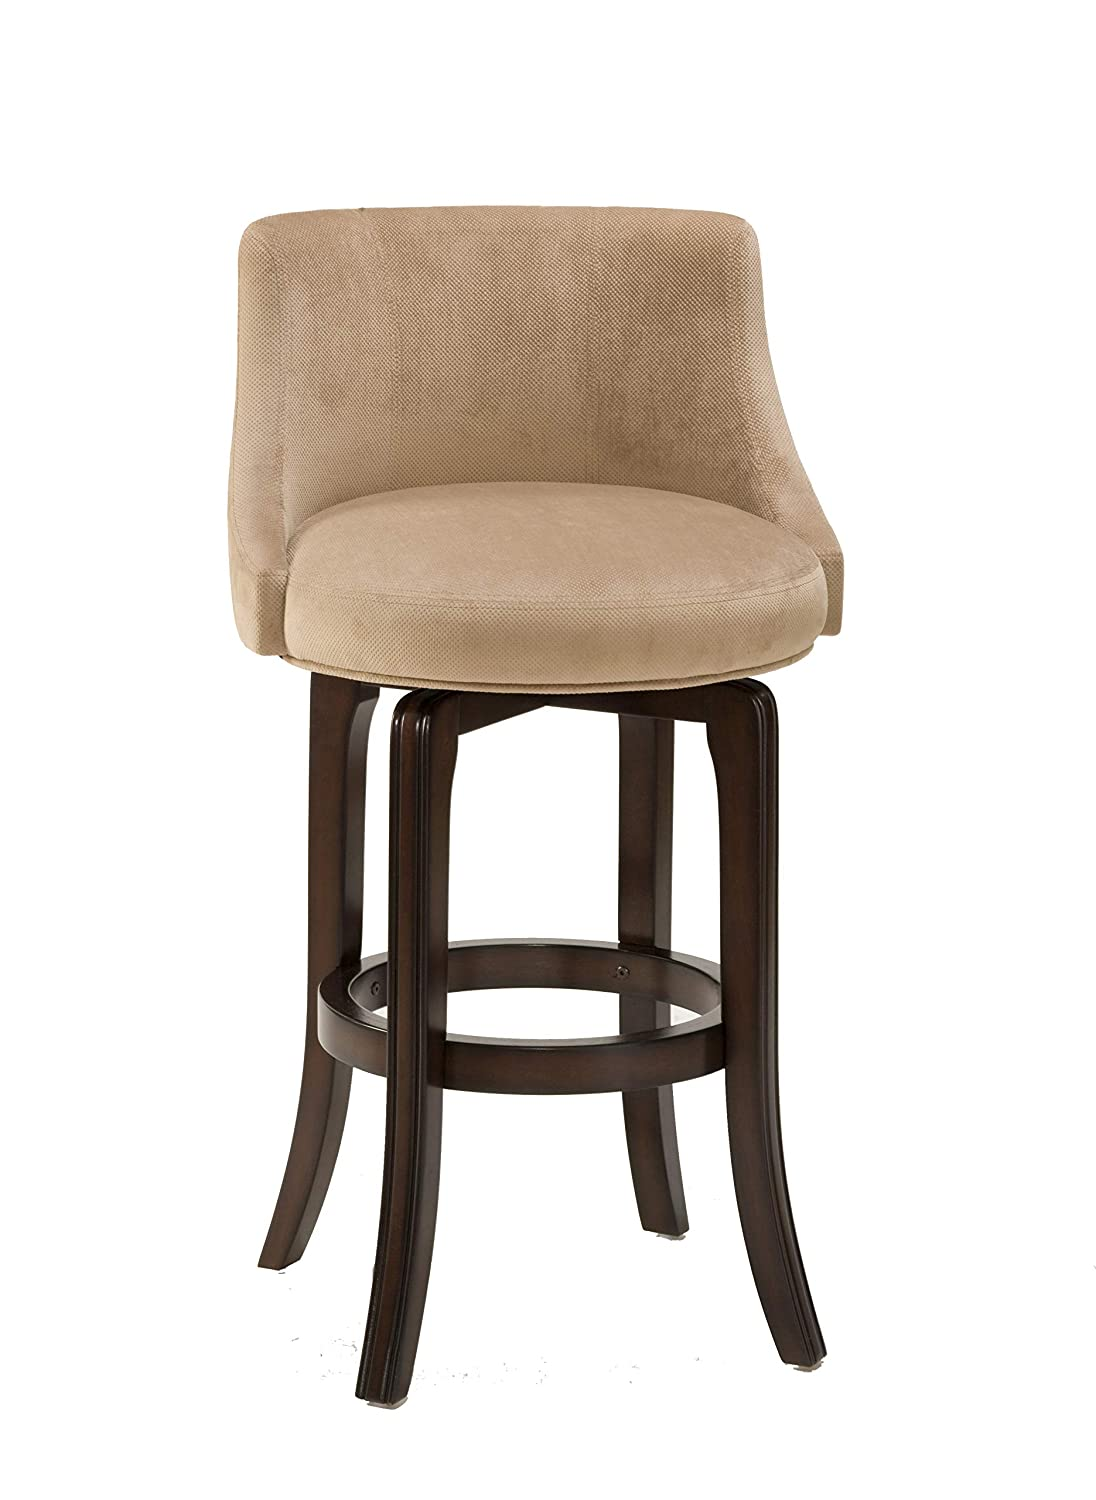 Swell Hillsdale Furniture Napa Valley Upholstered Swivel Bar Stool Khaki Caraccident5 Cool Chair Designs And Ideas Caraccident5Info